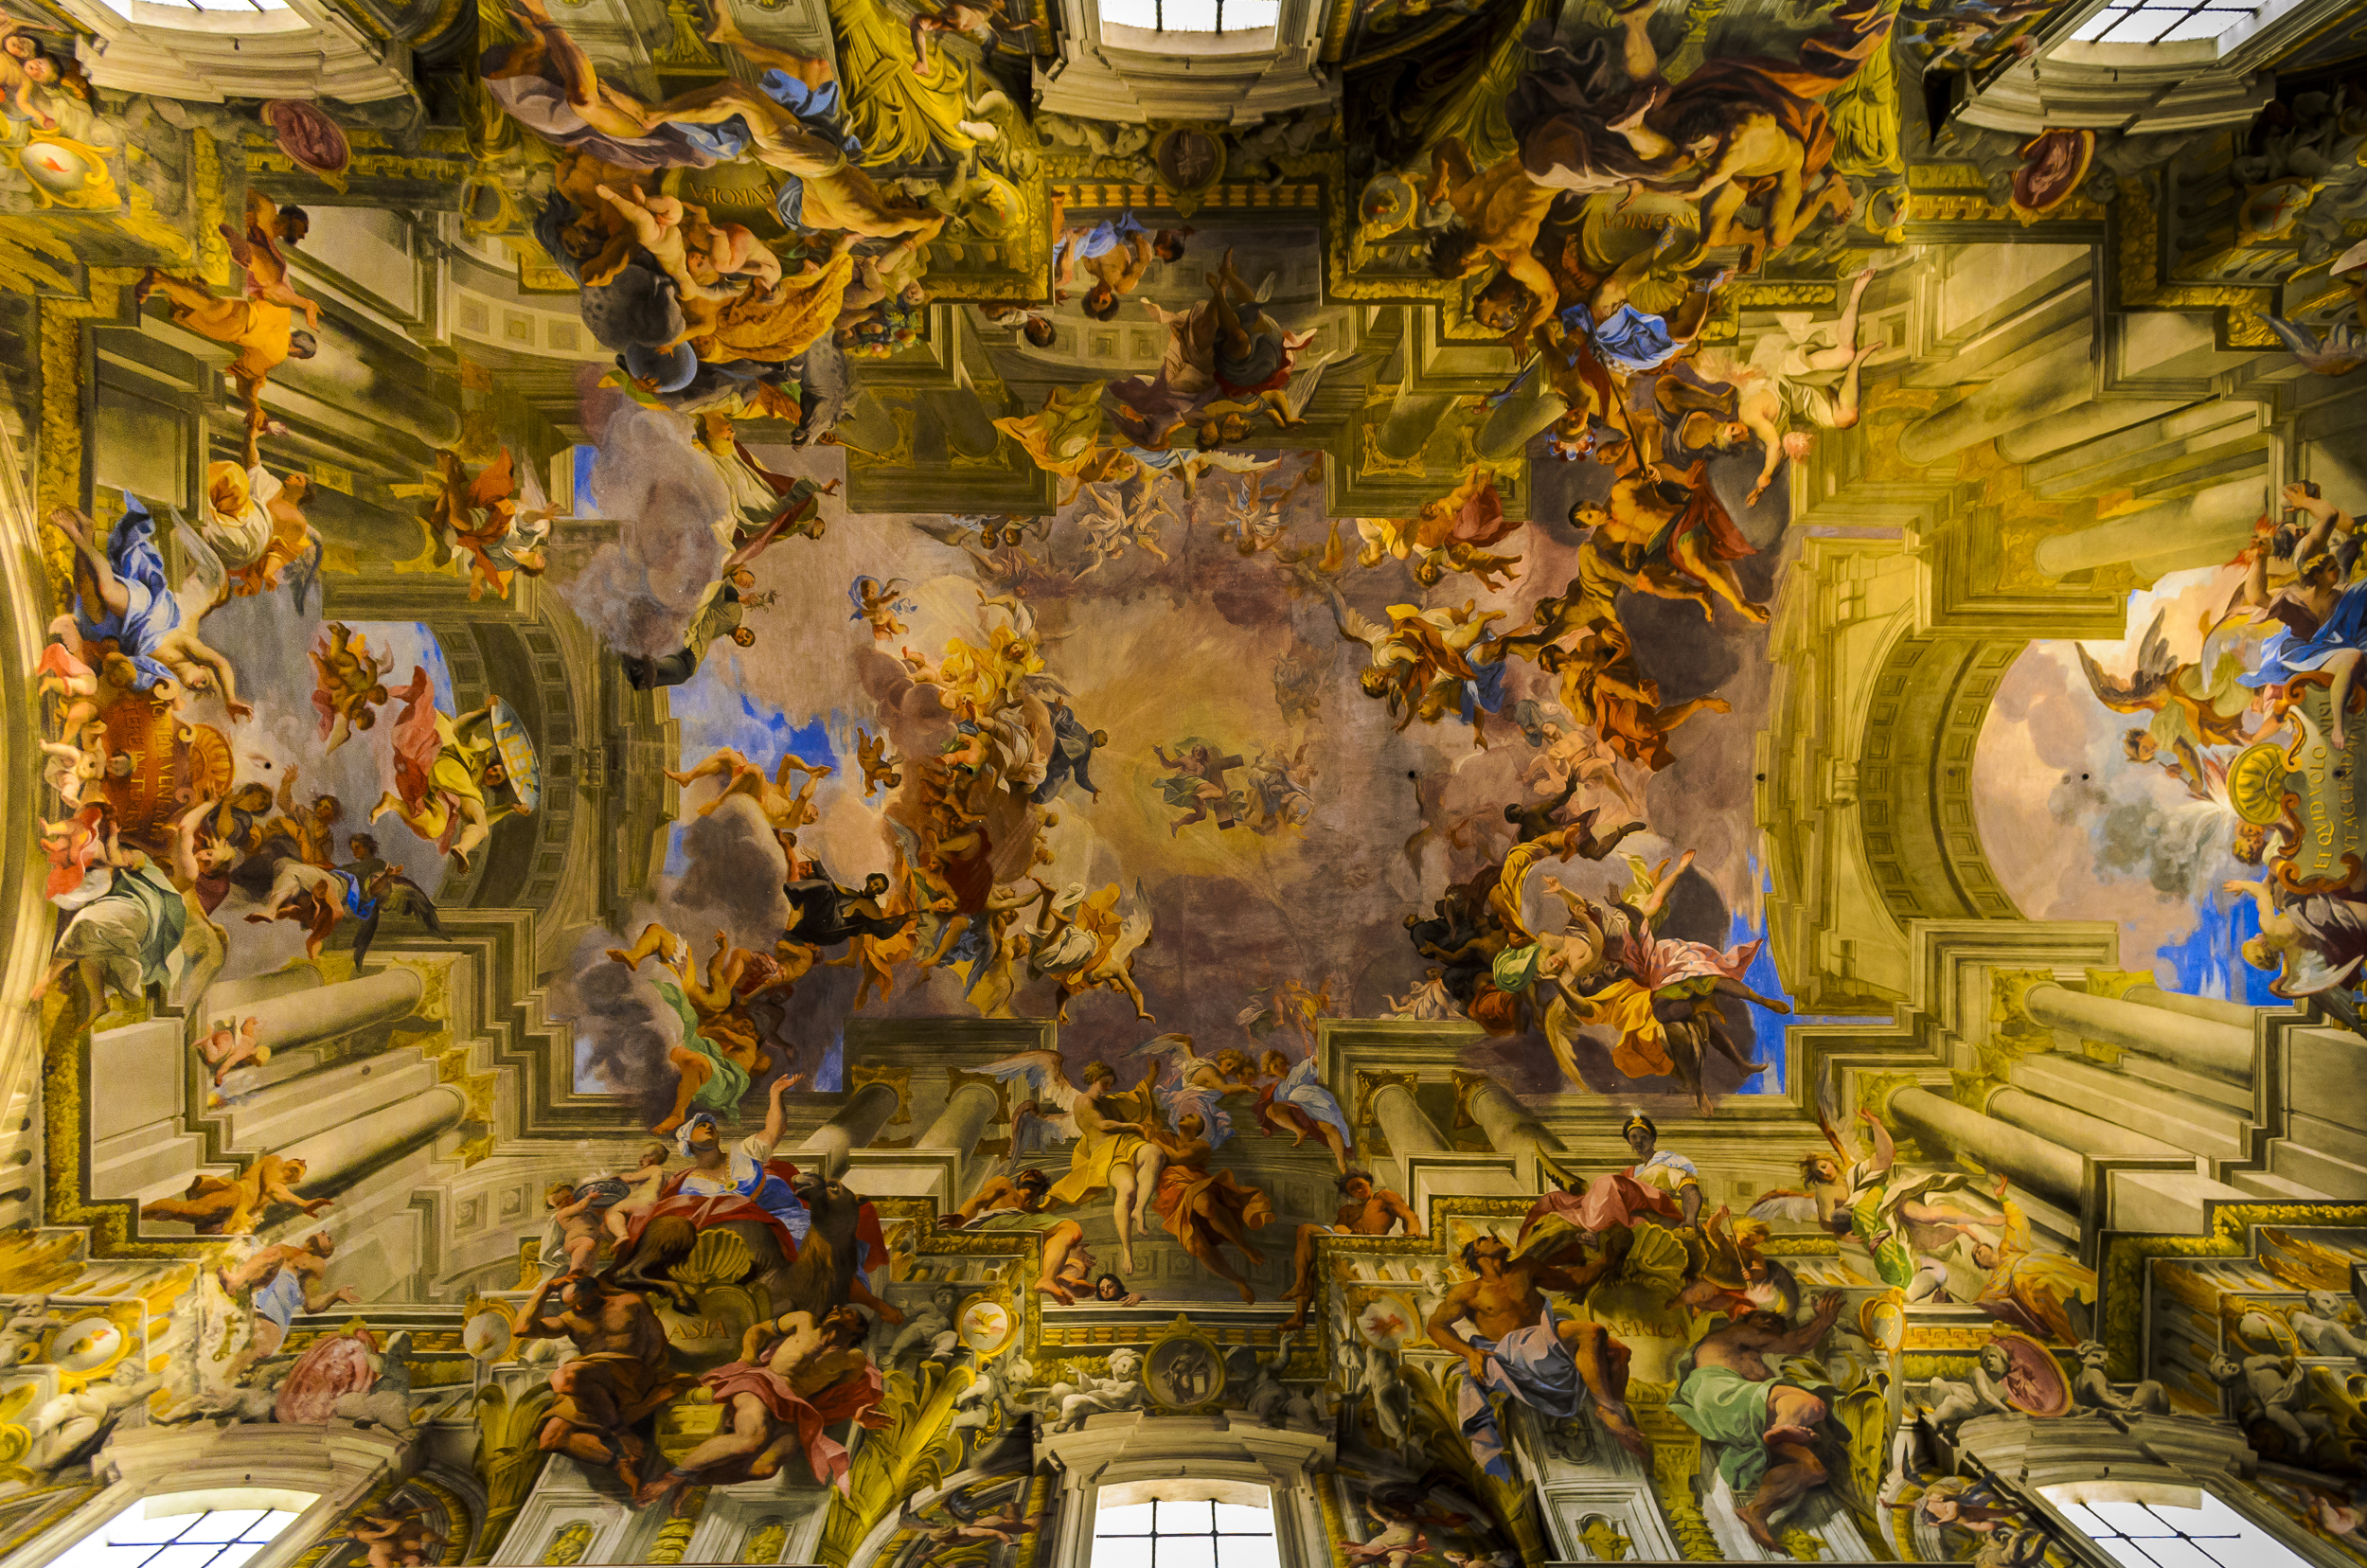 Itchurchceiling.jpg